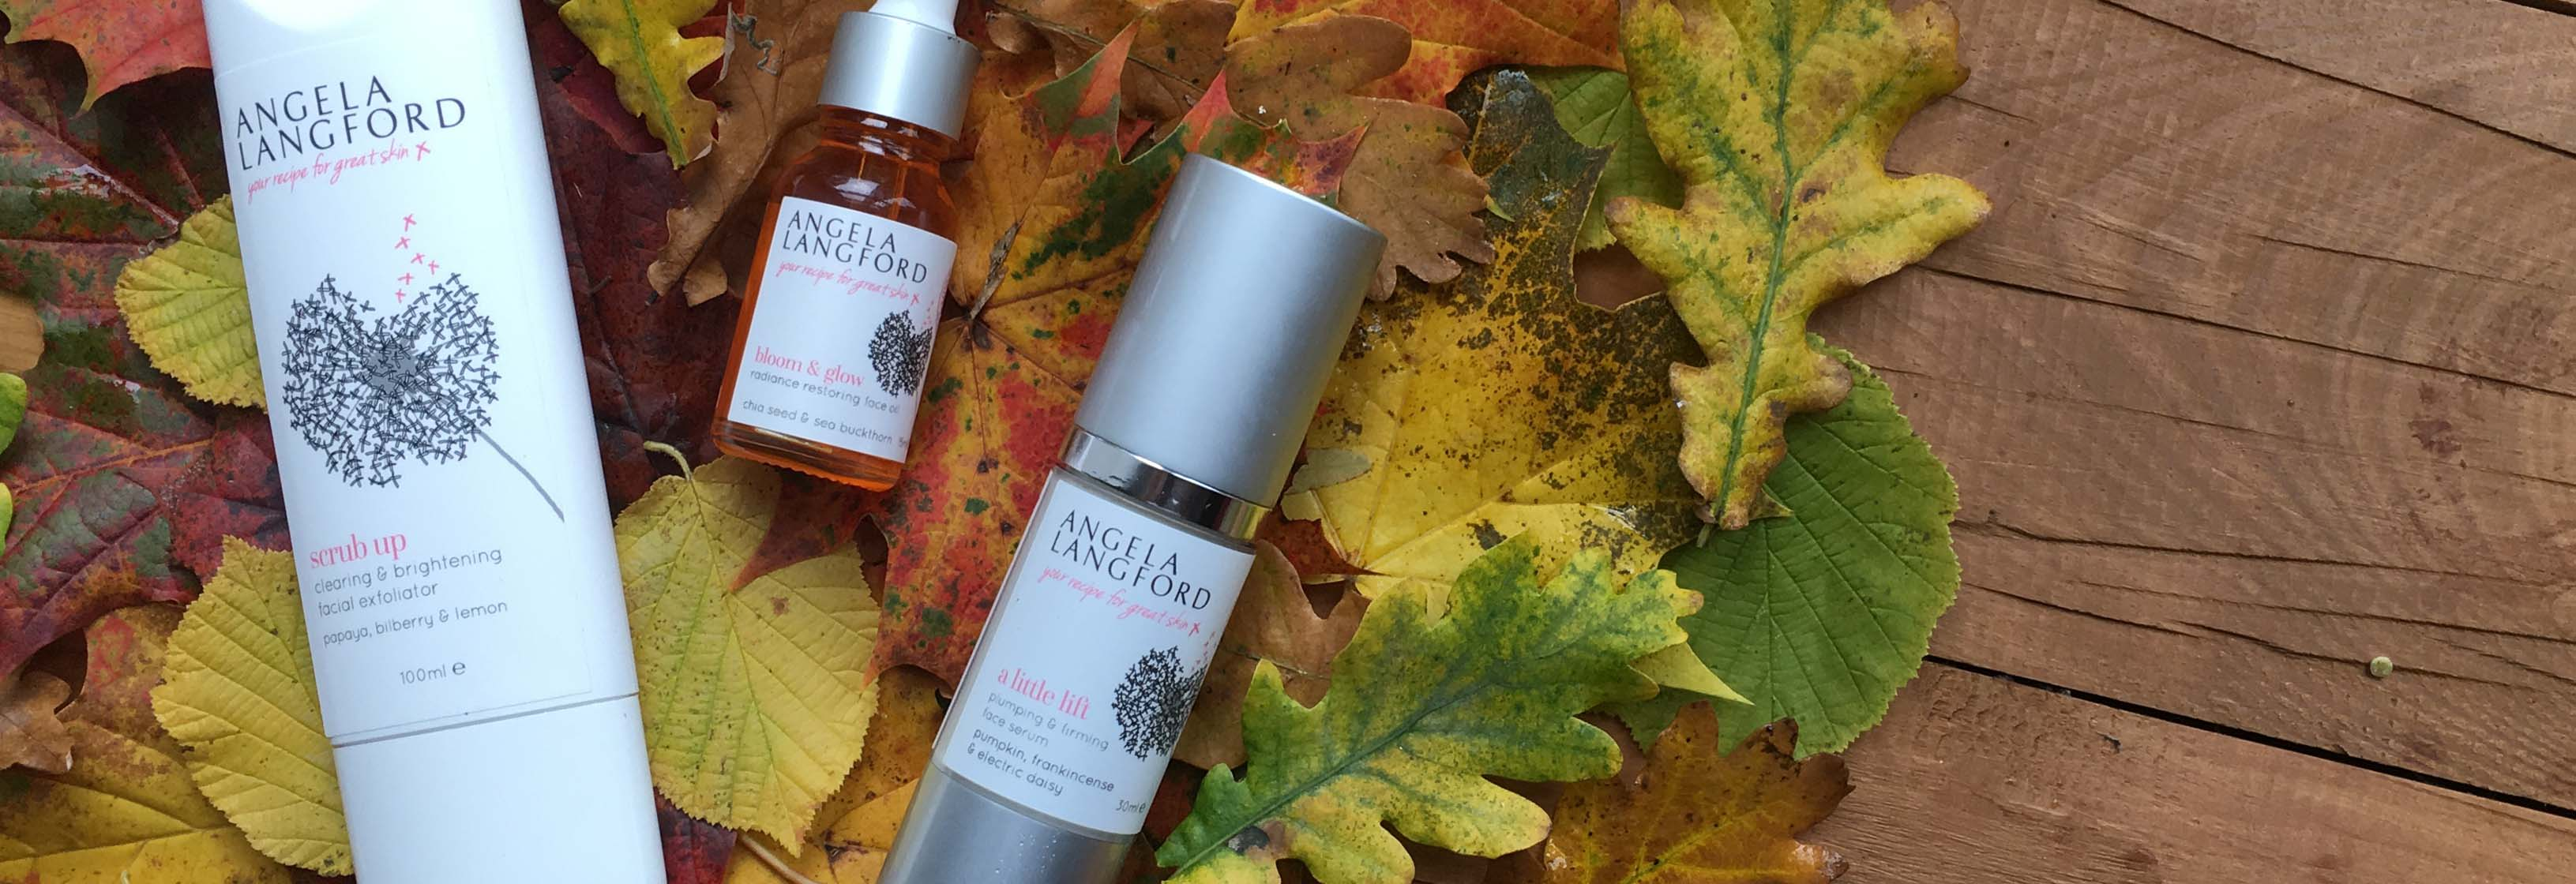 top tips for replenished skin this autumn with angela langford skincare